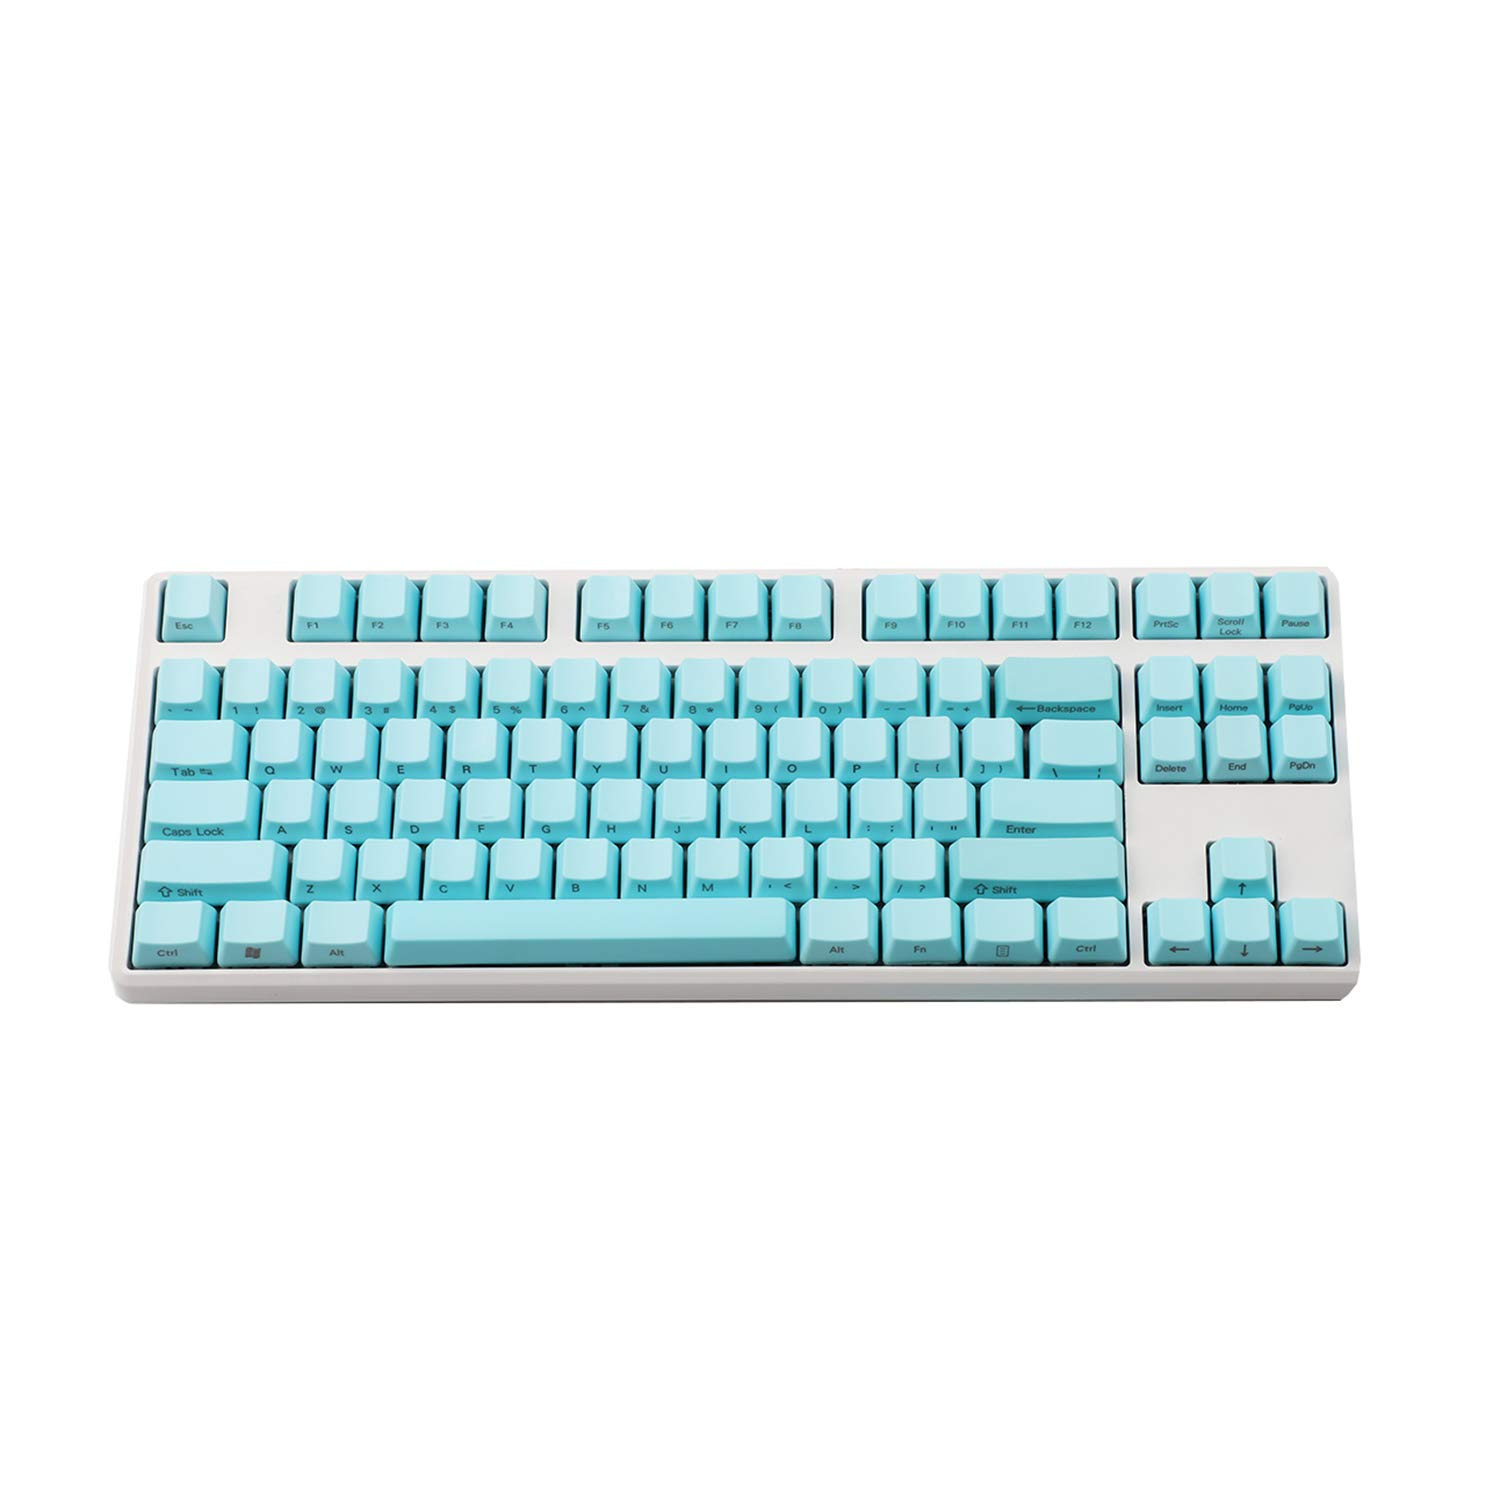 Side-Printed Thick PBT OEM Profile 87 ANSI Keycaps for MX Switches Mechanical Keyboard (White) WPL ymd-key-s87